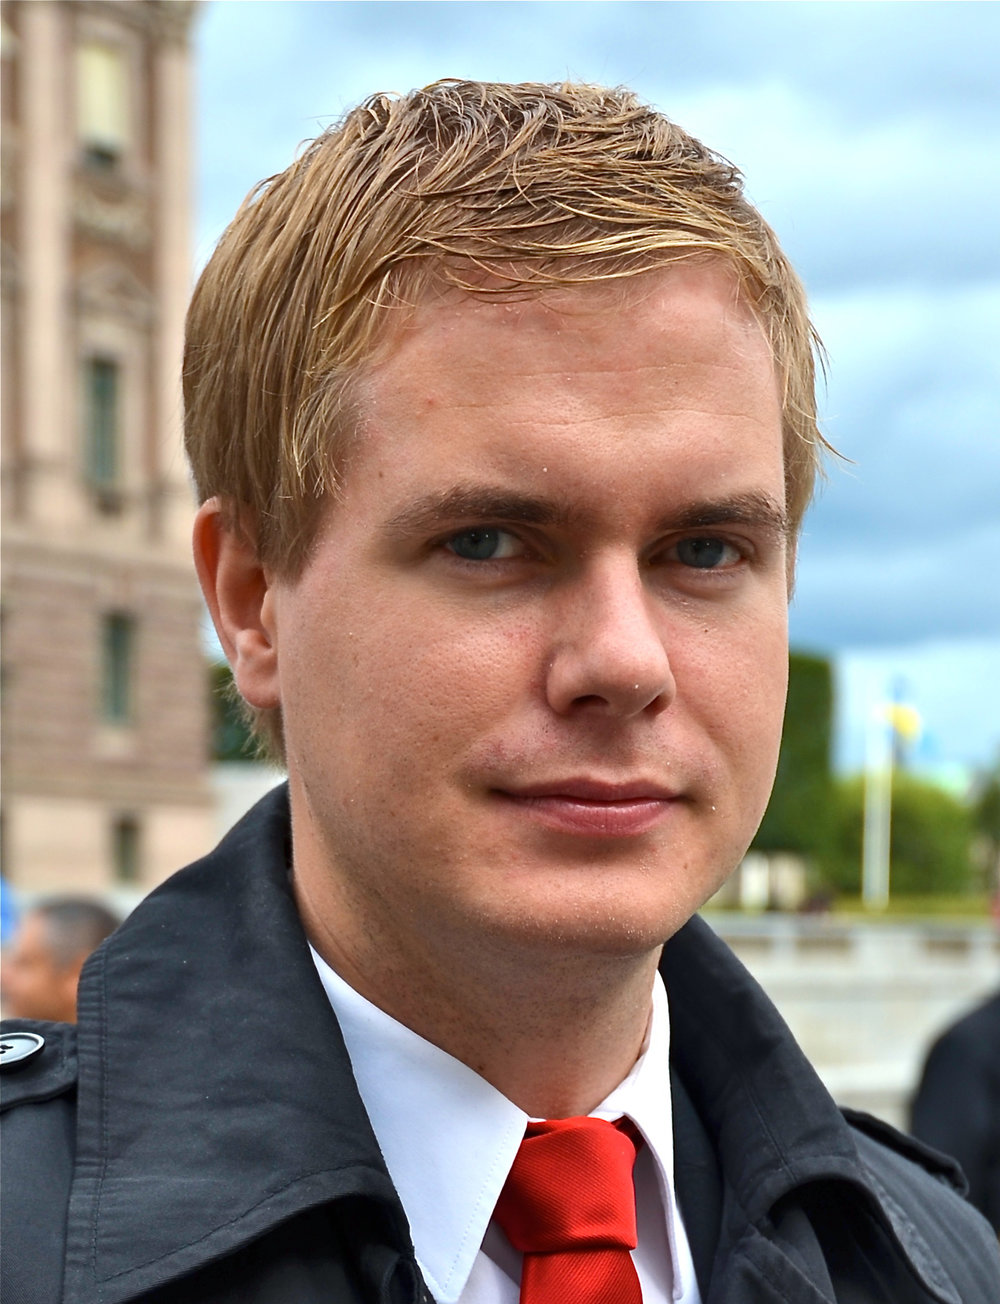 Miljöpartiet (Green Party Sweden) was represented by Gustav Fridolin, Minister of Education in Löfven Cabinet, spokesperson of the Green Party.